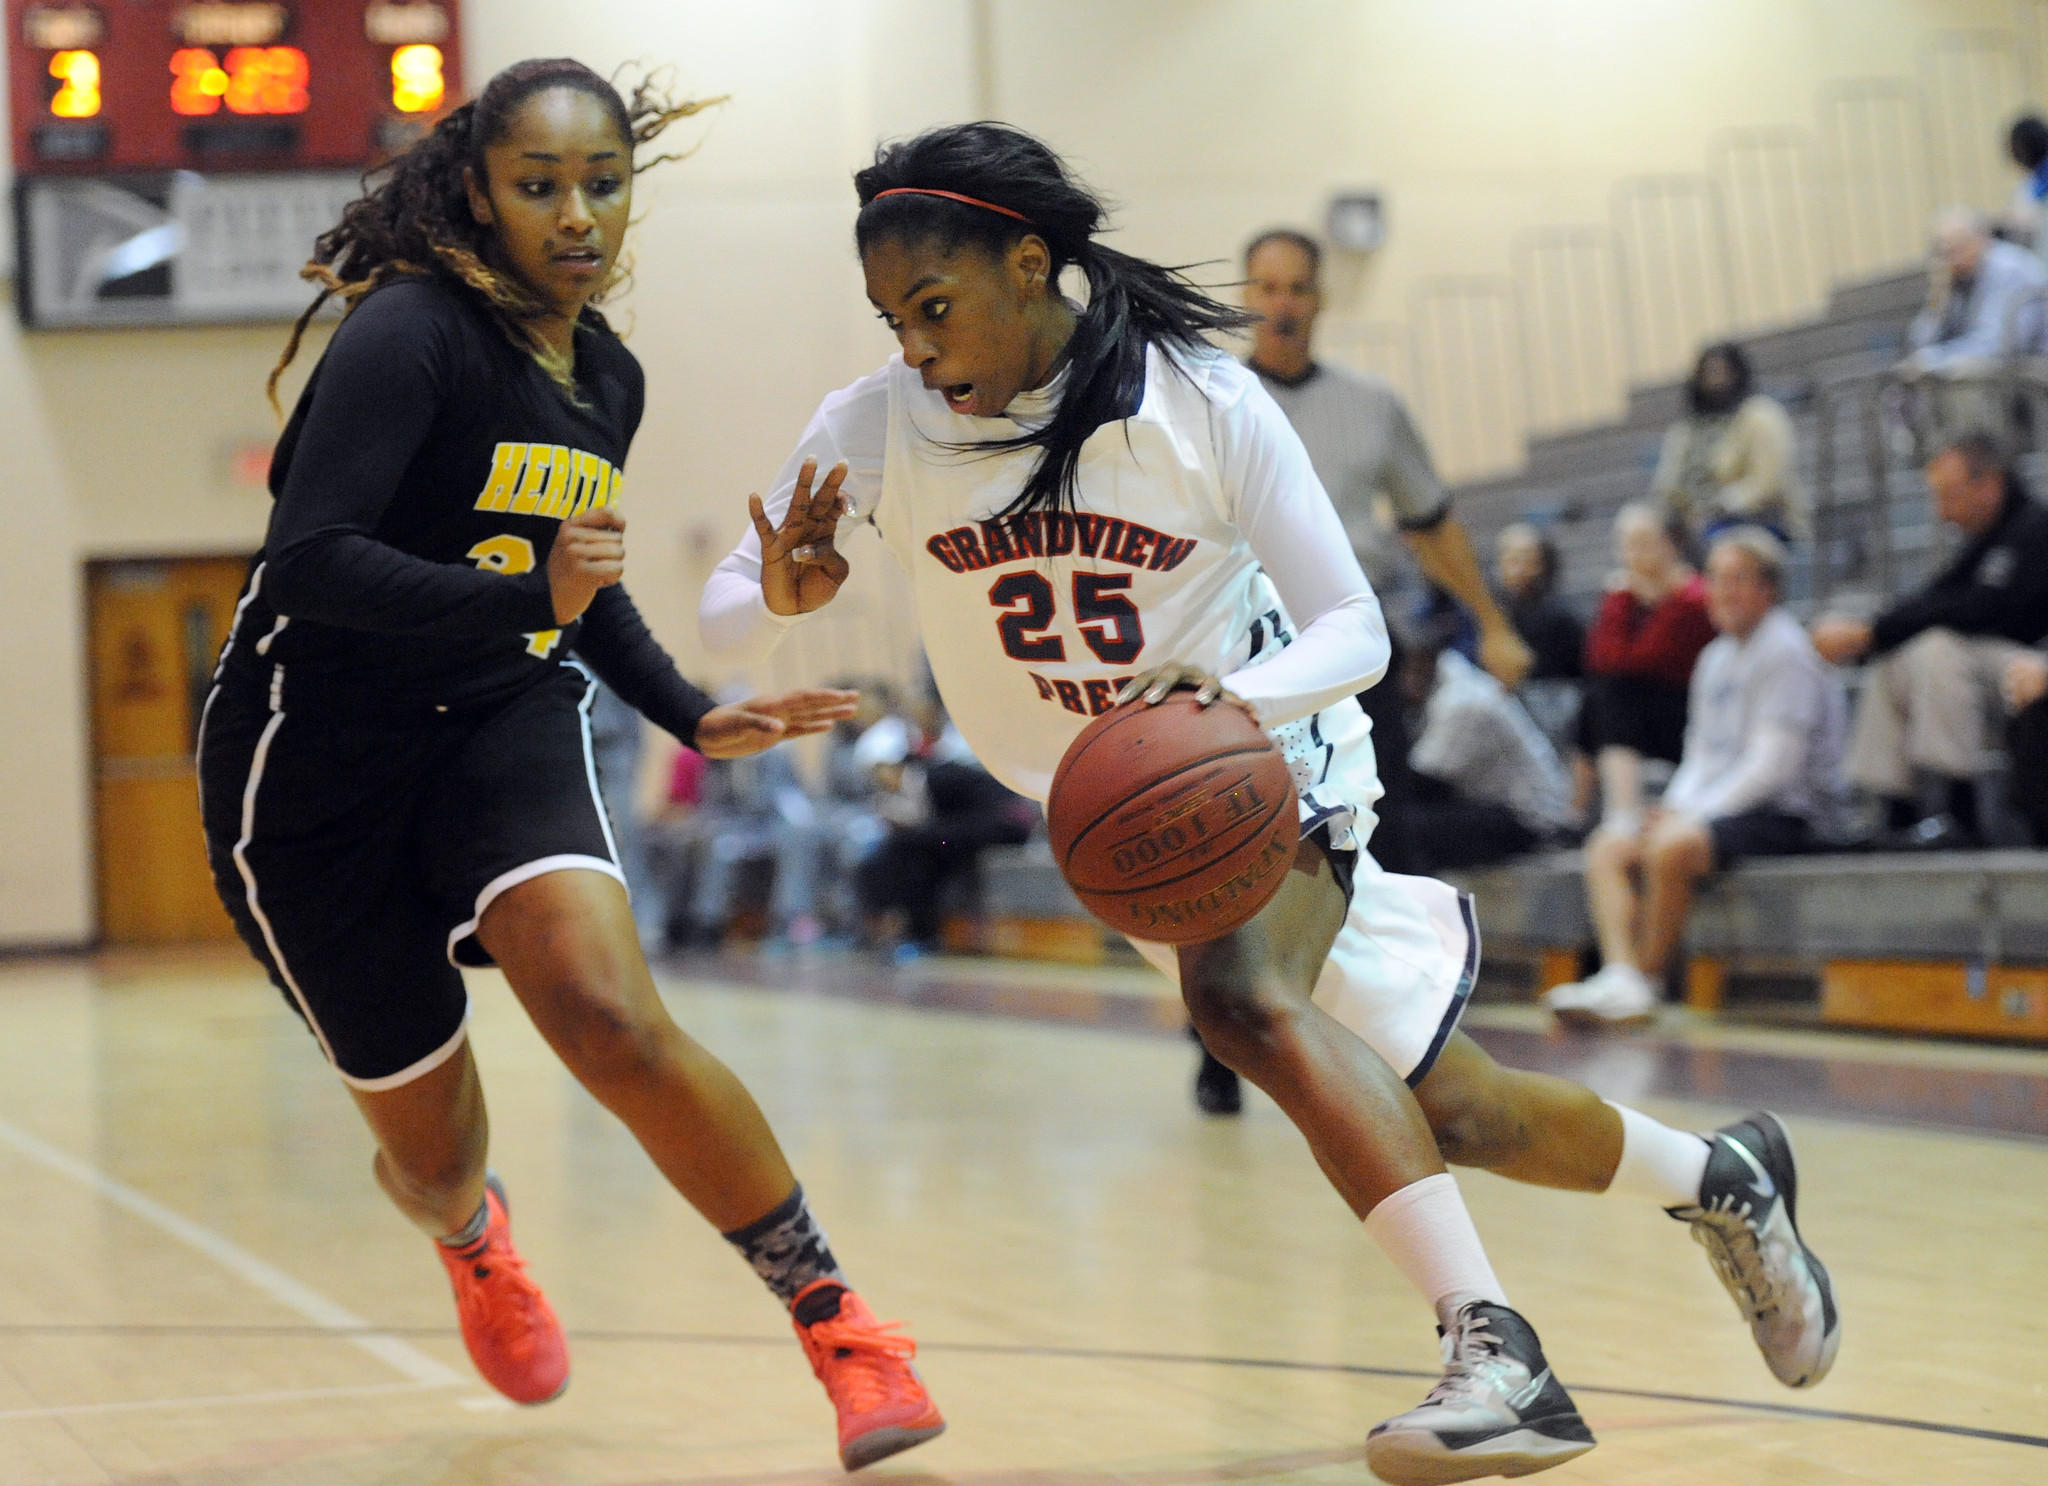 Neydja Petithomme, right, and her Grandview Prep team is No. 3 in the Sun Sentinel rankings.